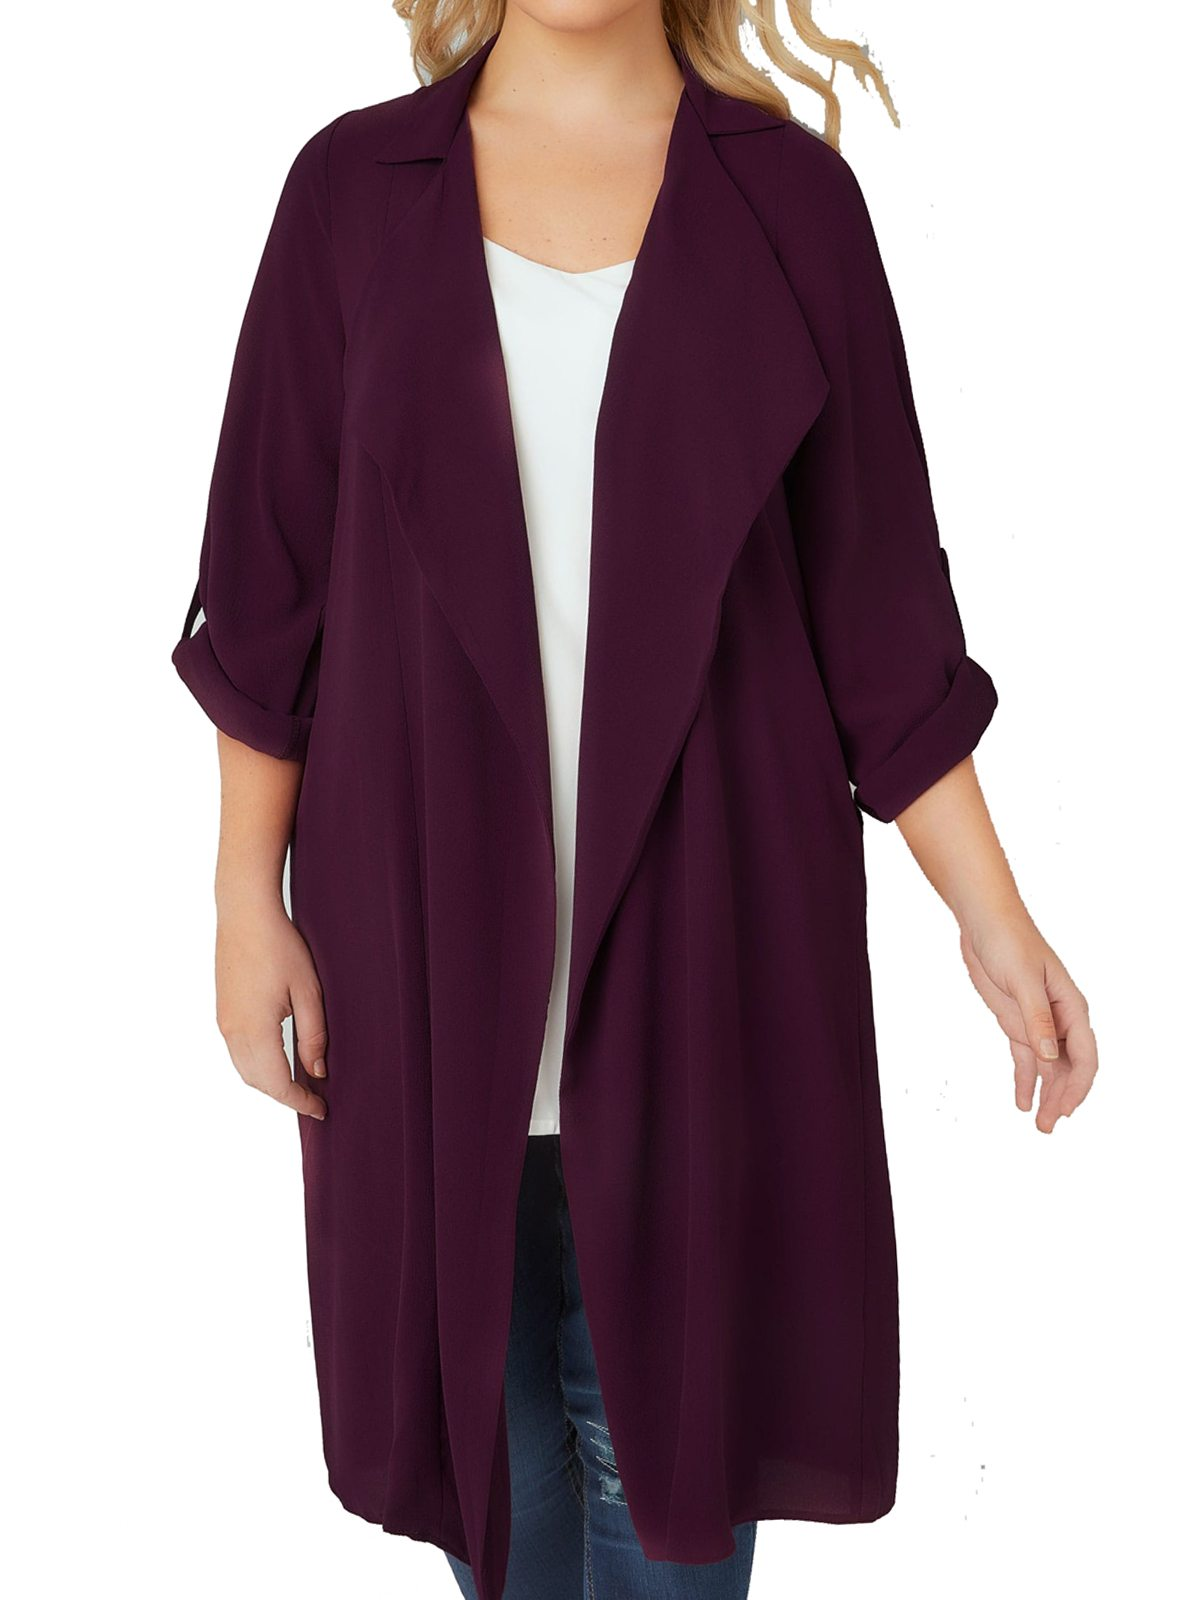 Plus Size Clothing for Women Sized 16 to Your best loved plus size online clothing brand, shop sizes Yours believe that all women should look awesome, regardless of their dress size.